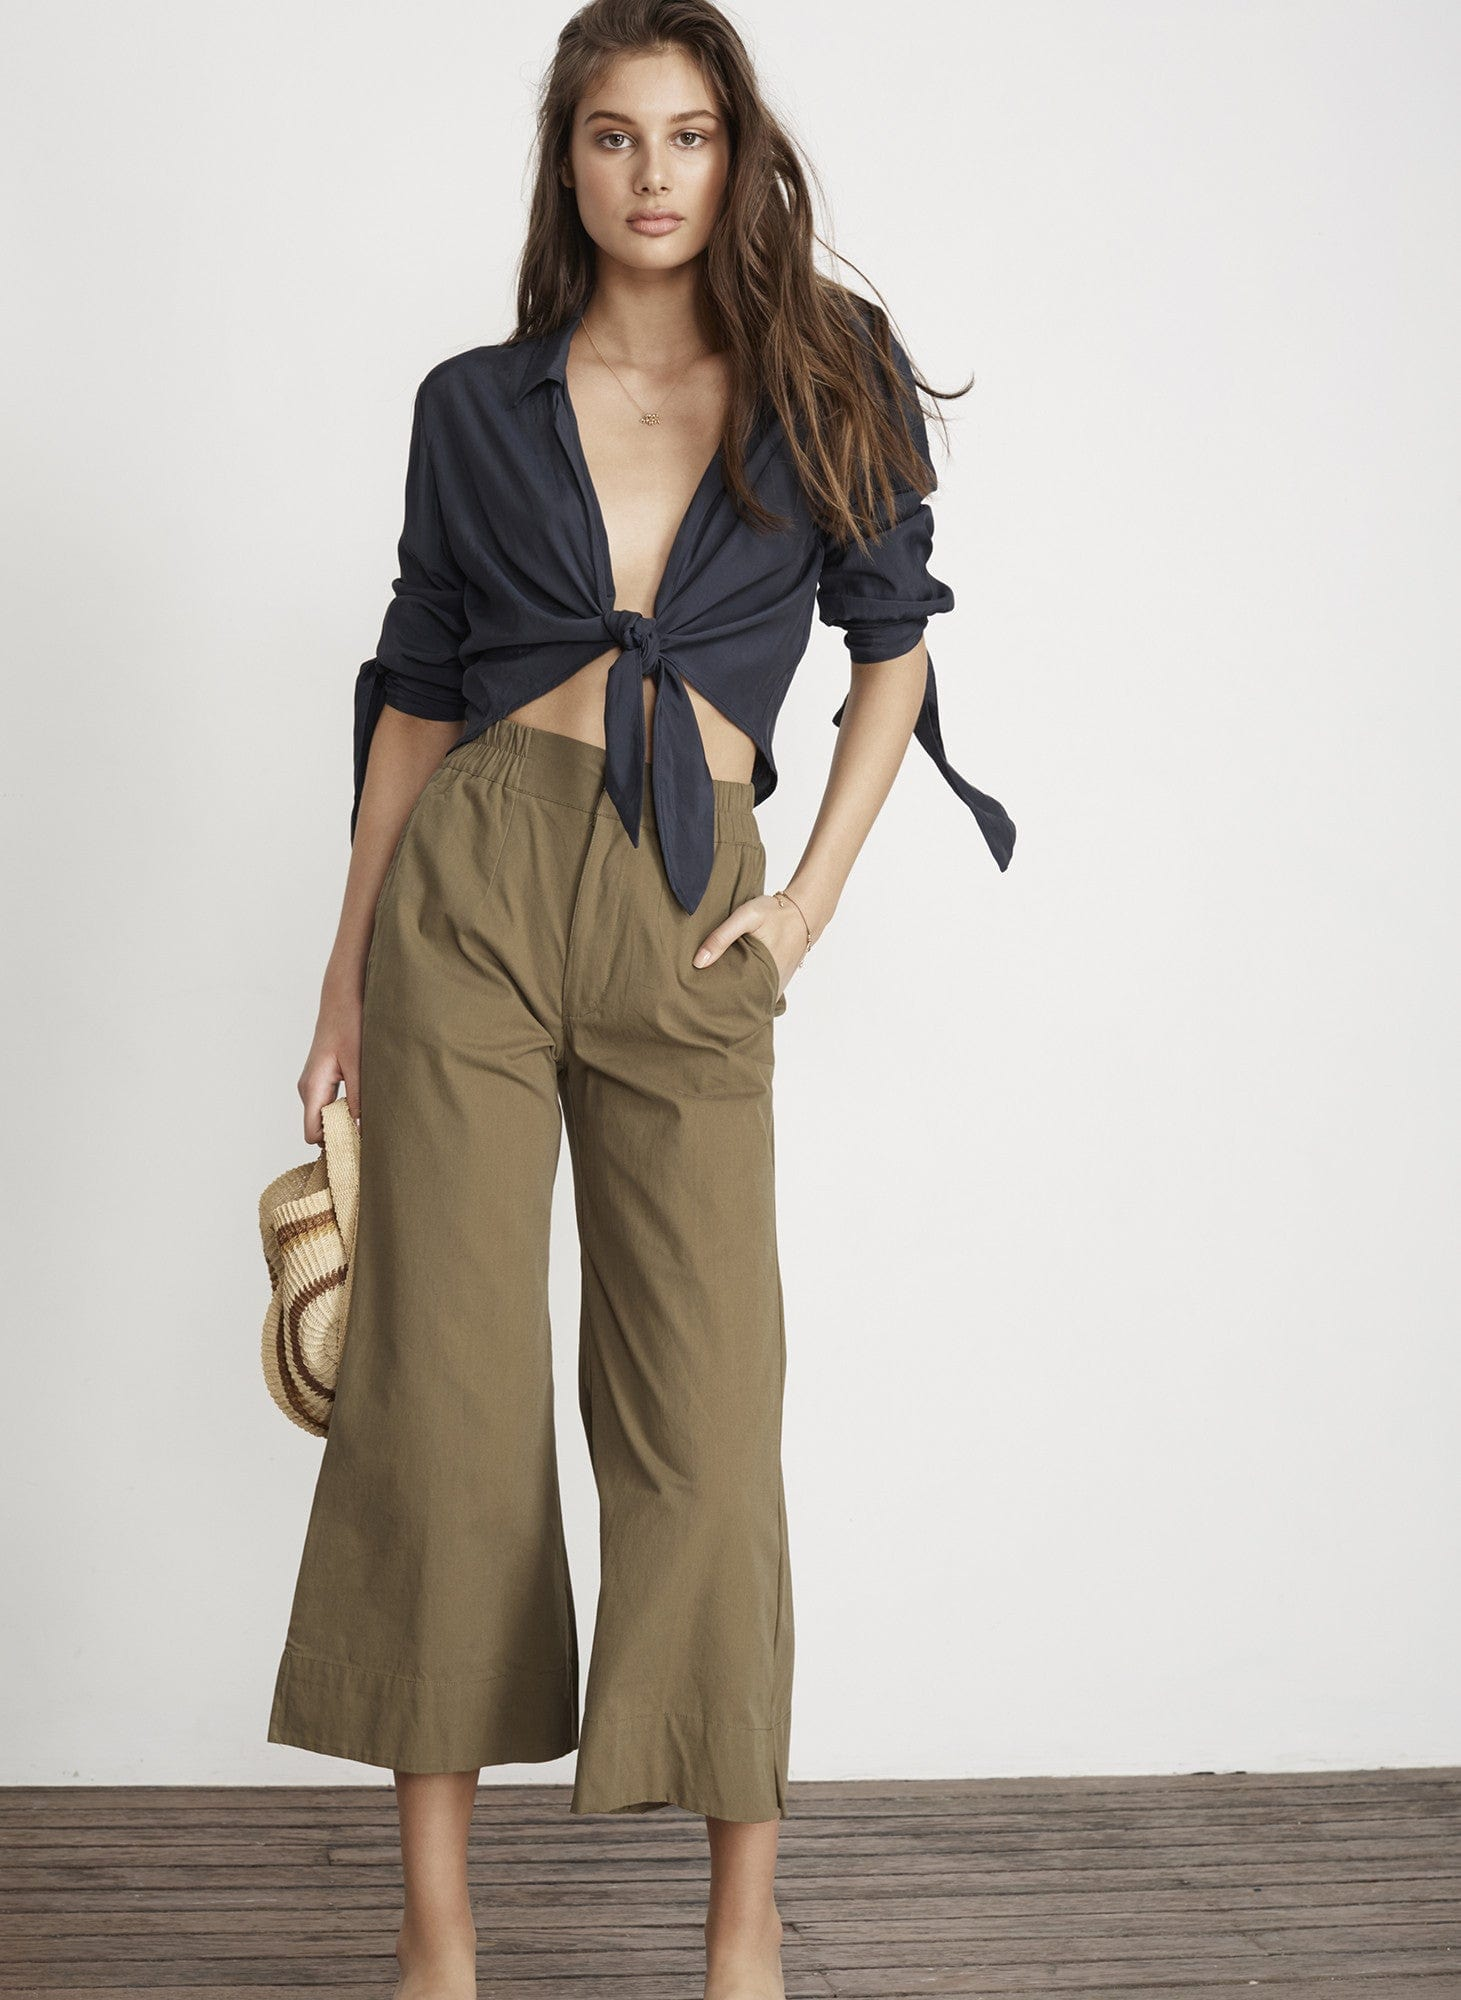 PLAIN KHAKI CANVAS - EDIE PANTS - FINAL SALE